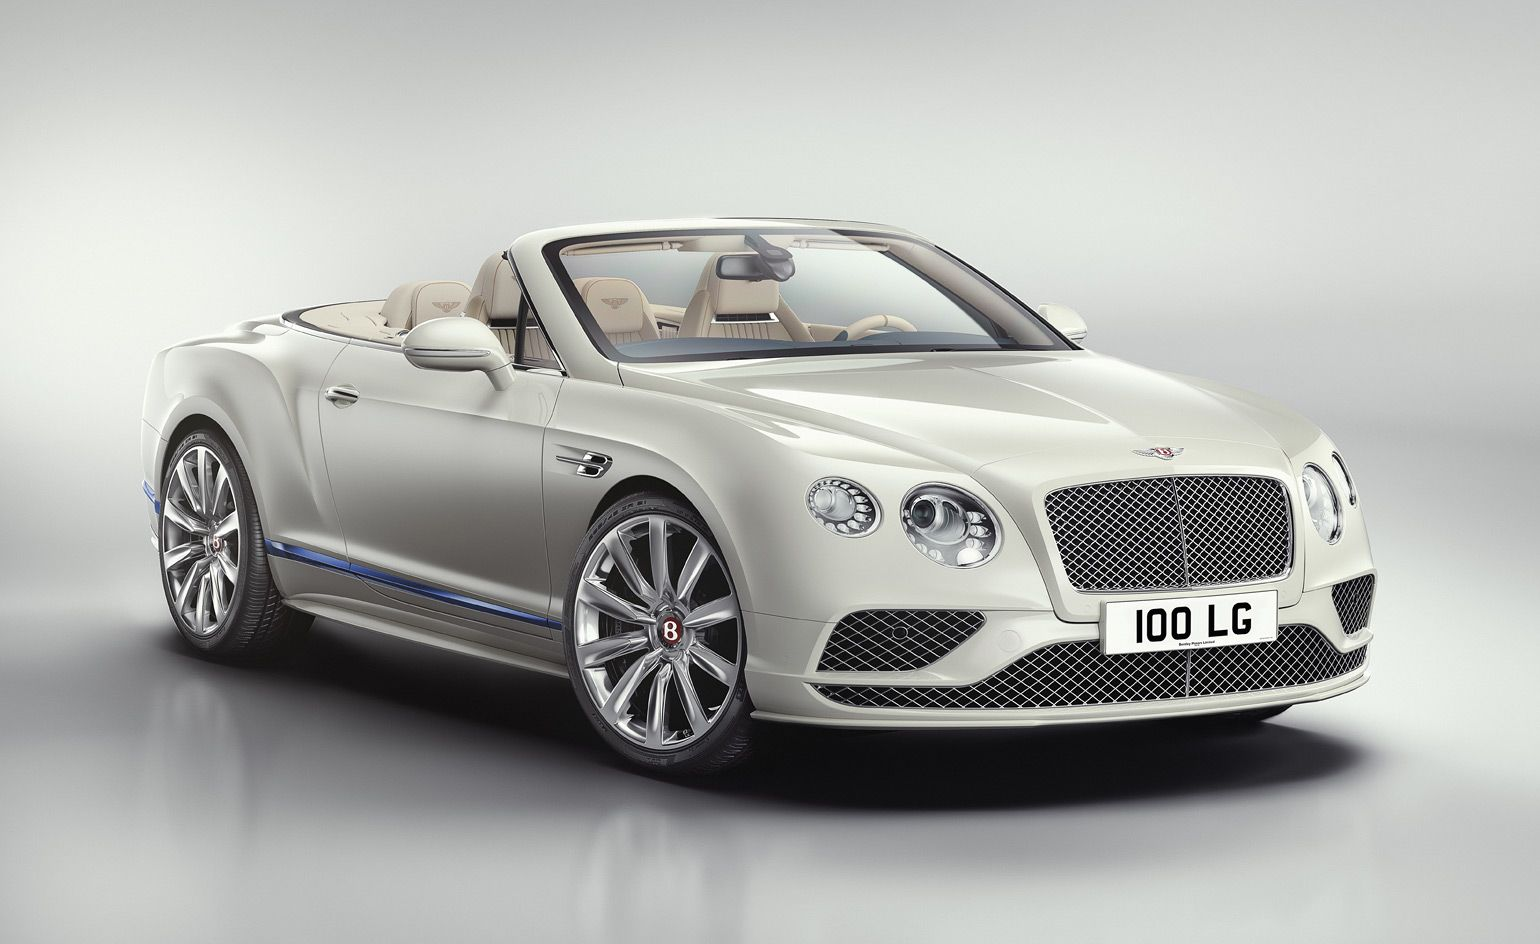 ares coupe autos categories en az performance tuning coup subscription of do mulsanne bentley magazine it yourself